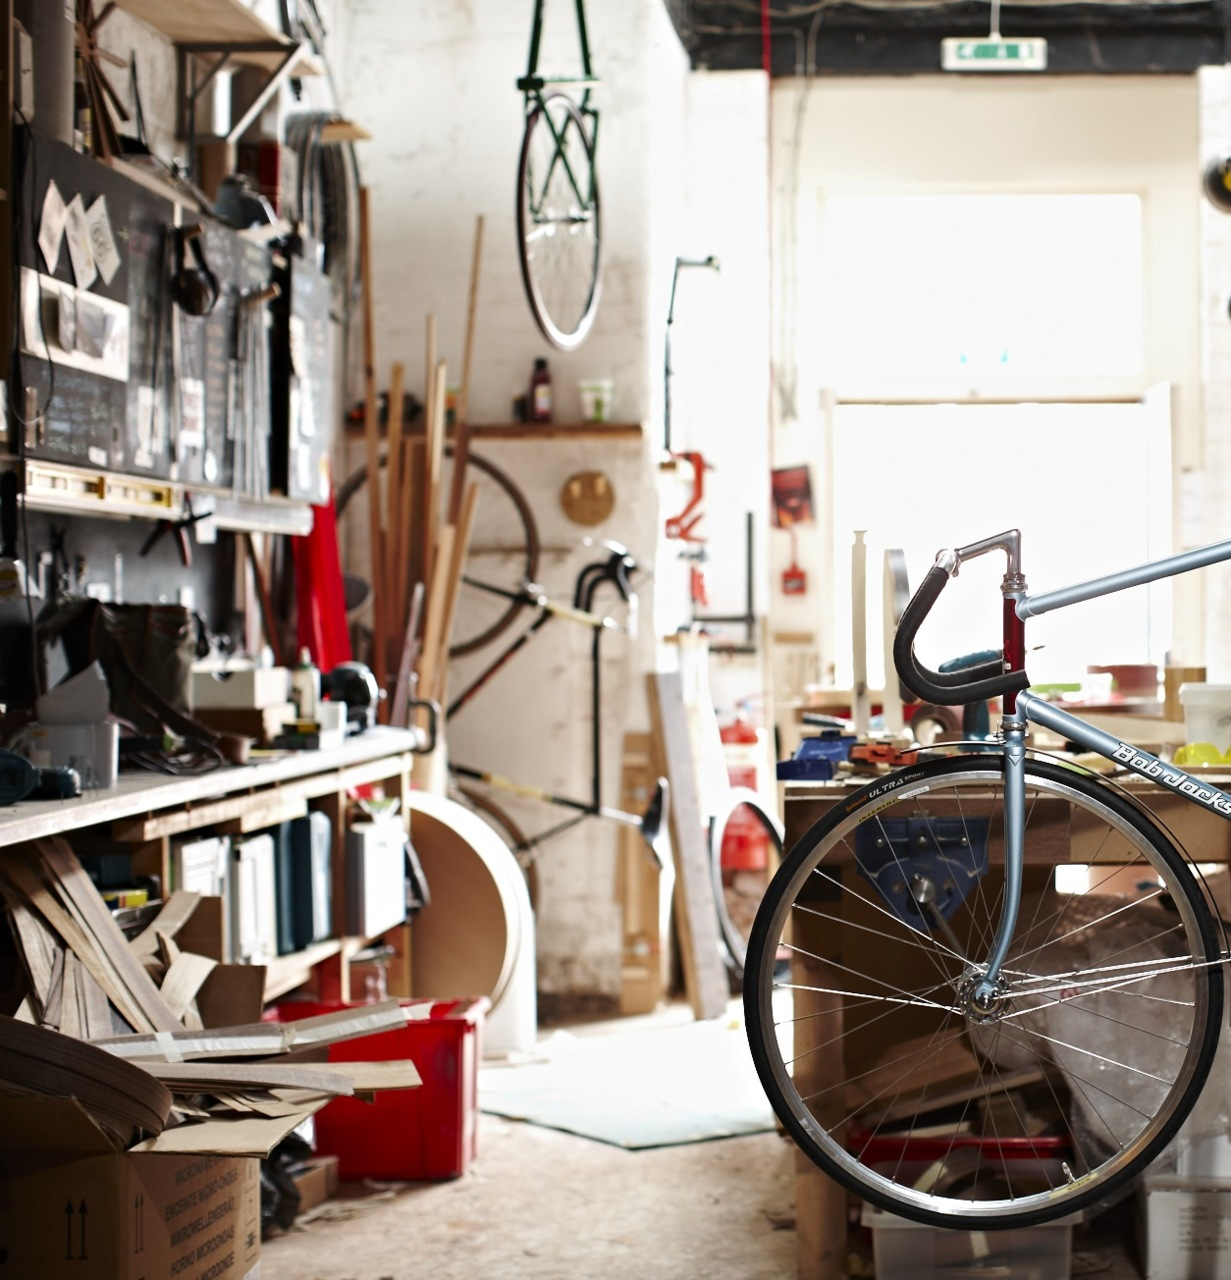 Squaretree workshop in Edinburgh. (Wooden mudguards, Wooden fenders, Wood fenders, Wood mudguards)